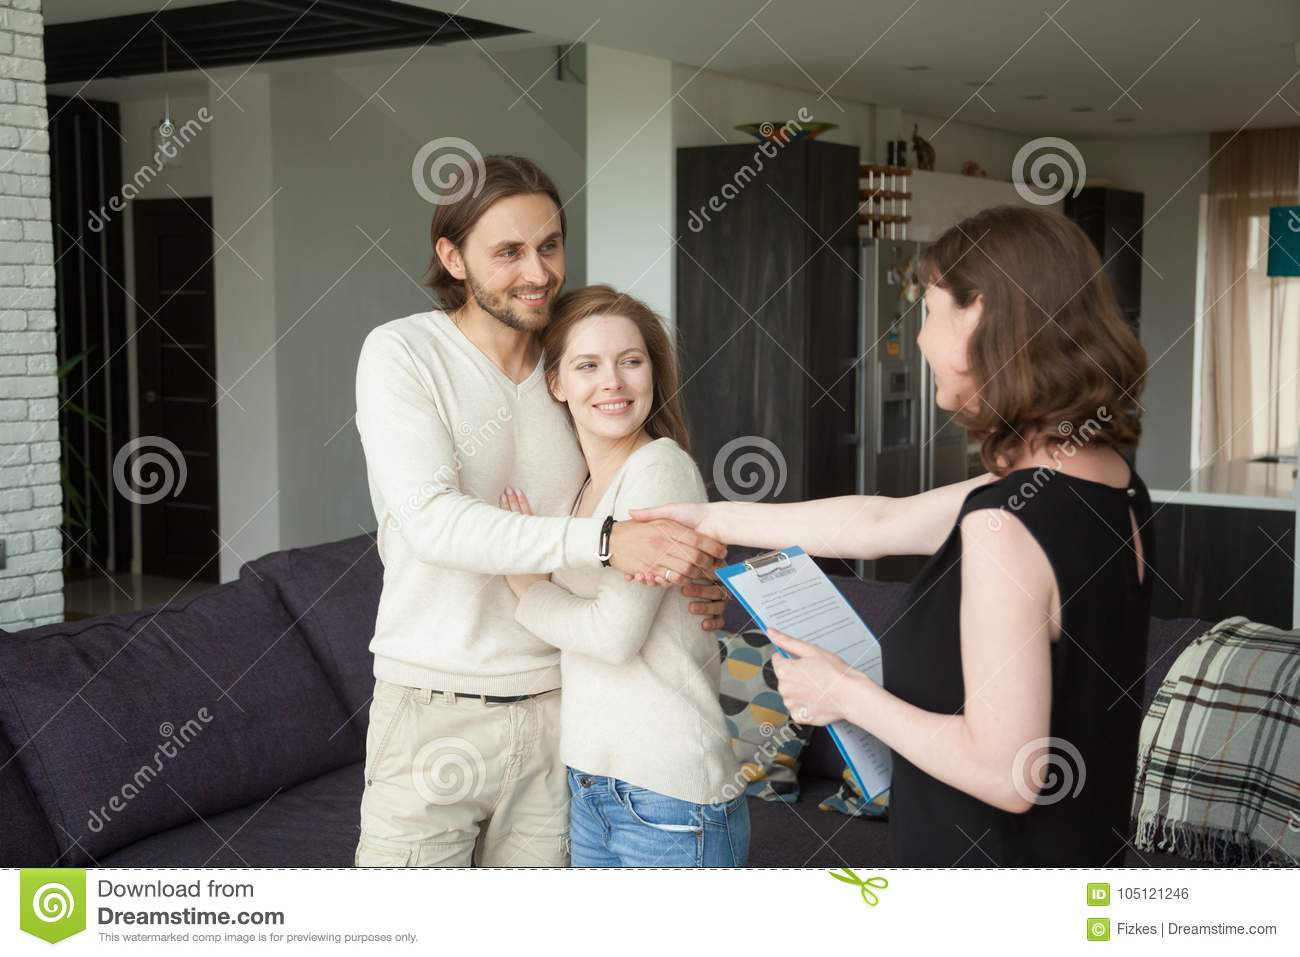 Real estate agent shaking hands couple clients in rental house